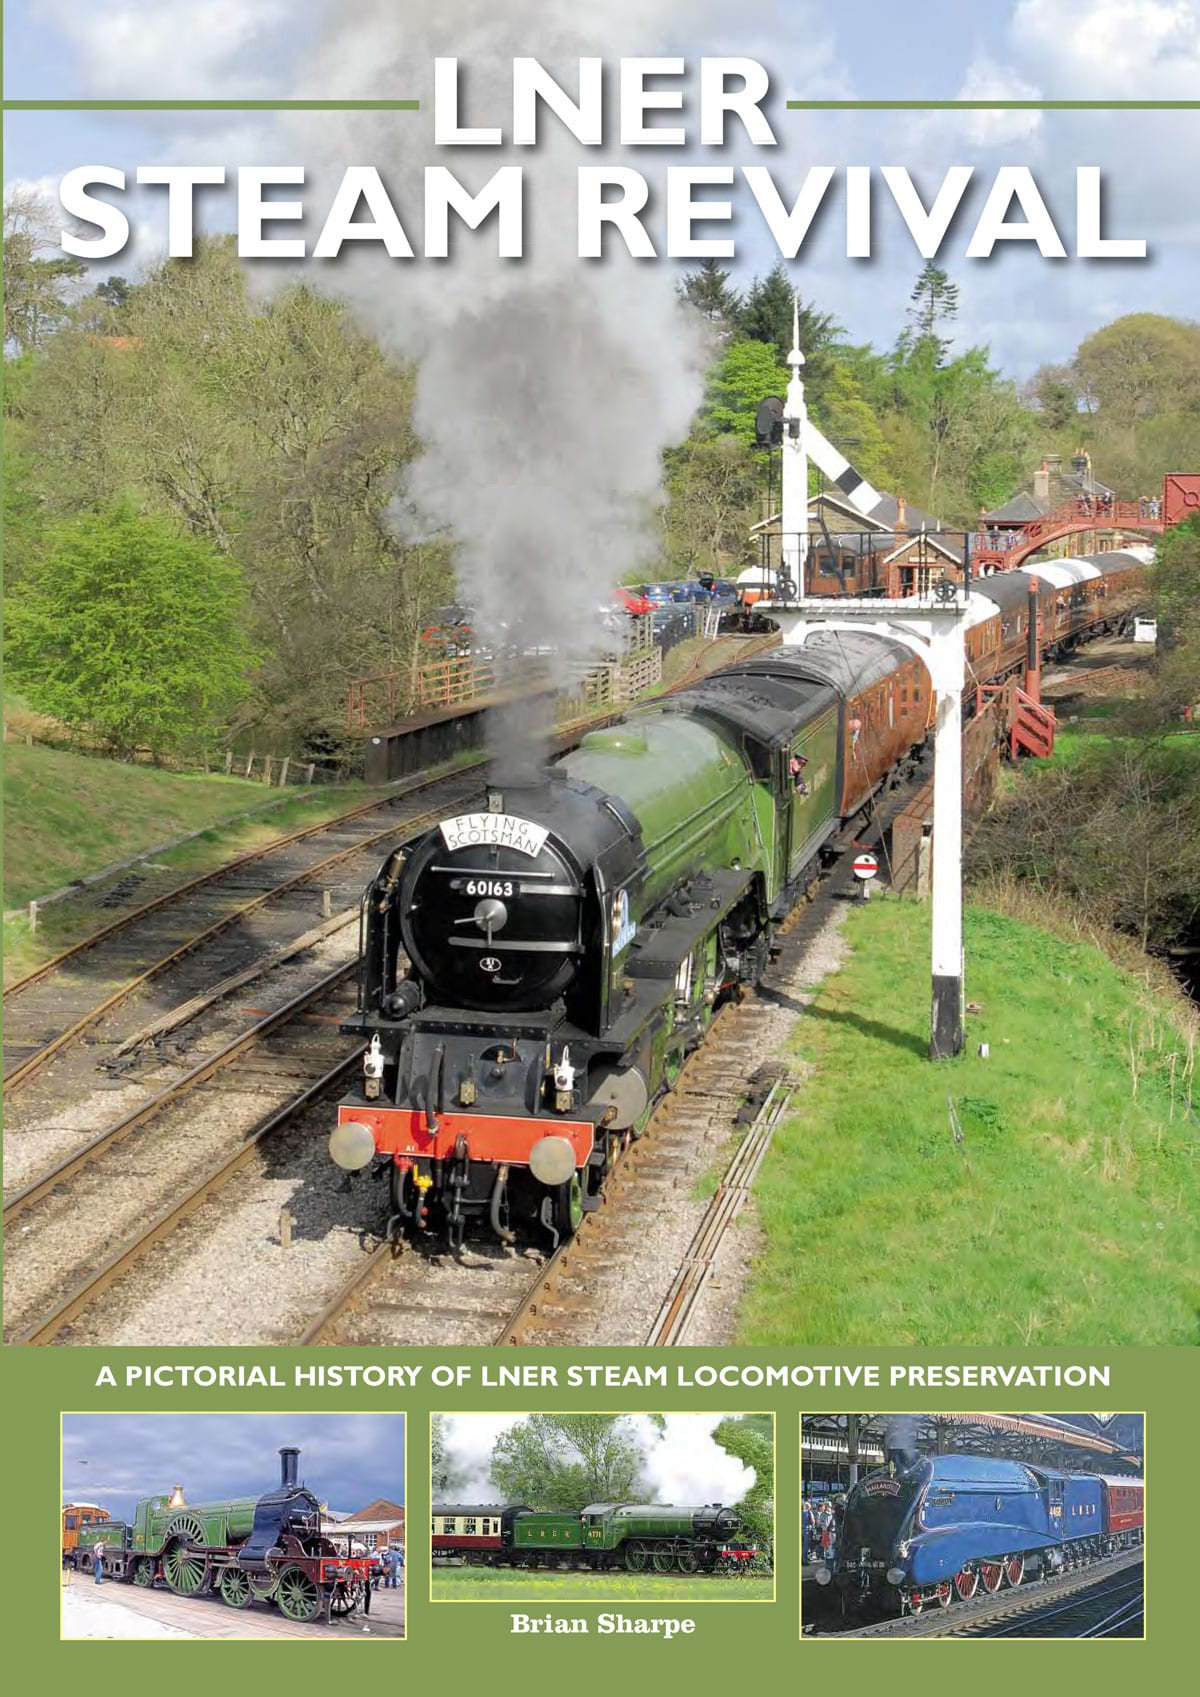 LNER Steam Revival